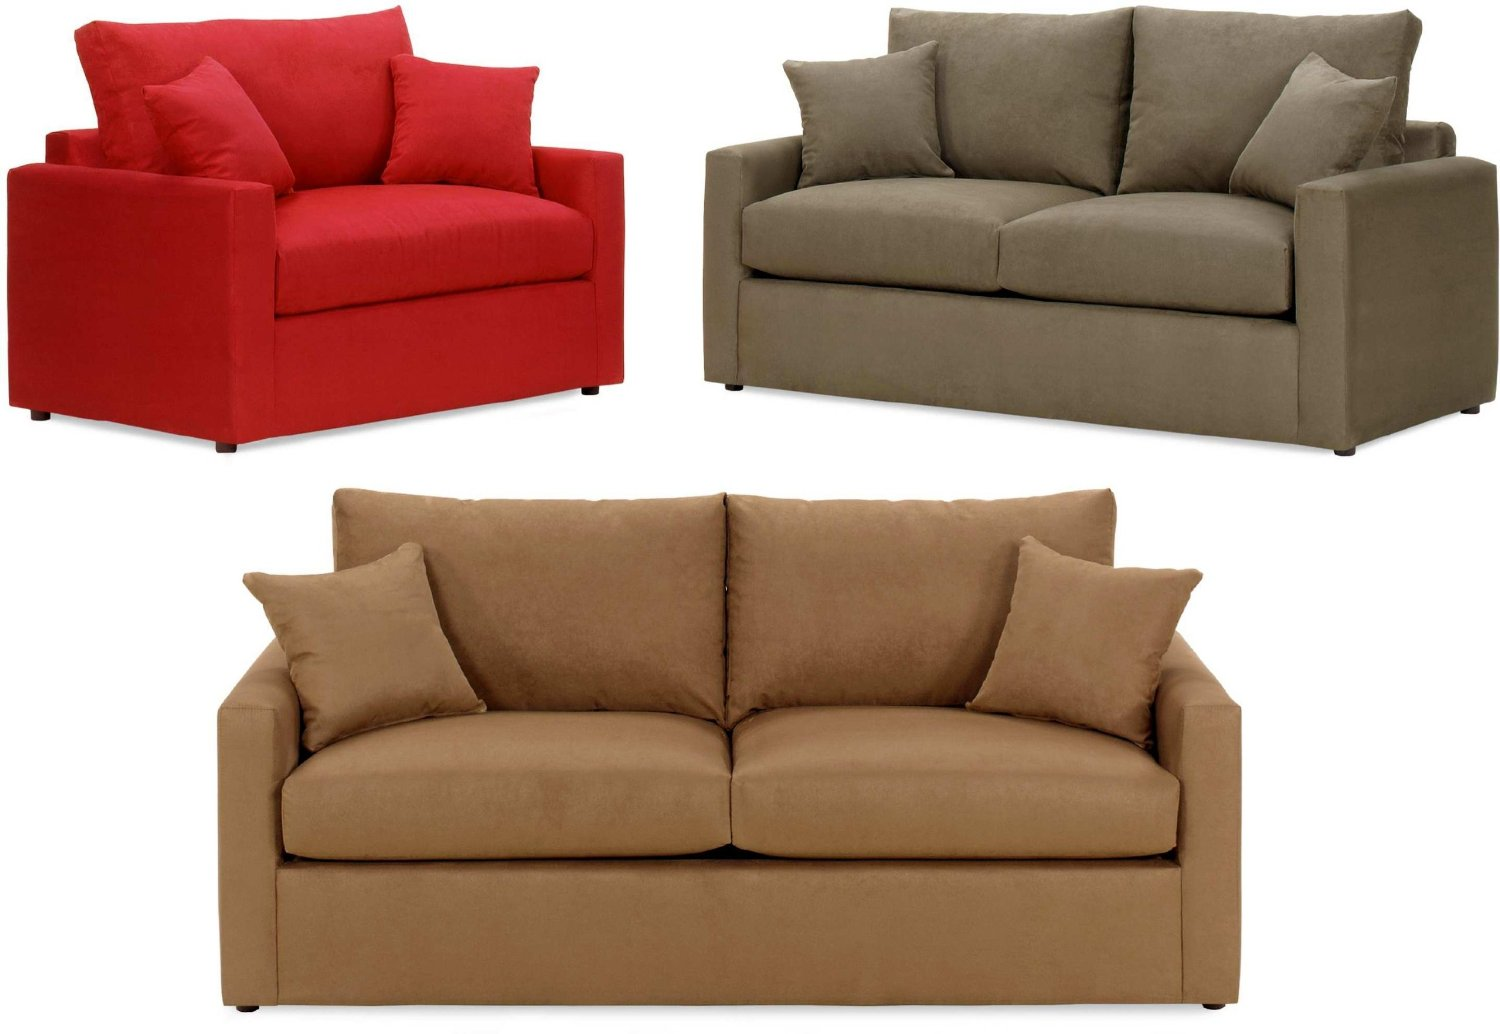 Twin sleeper sofa twin sleeper sofa Sofa sleeper loveseat